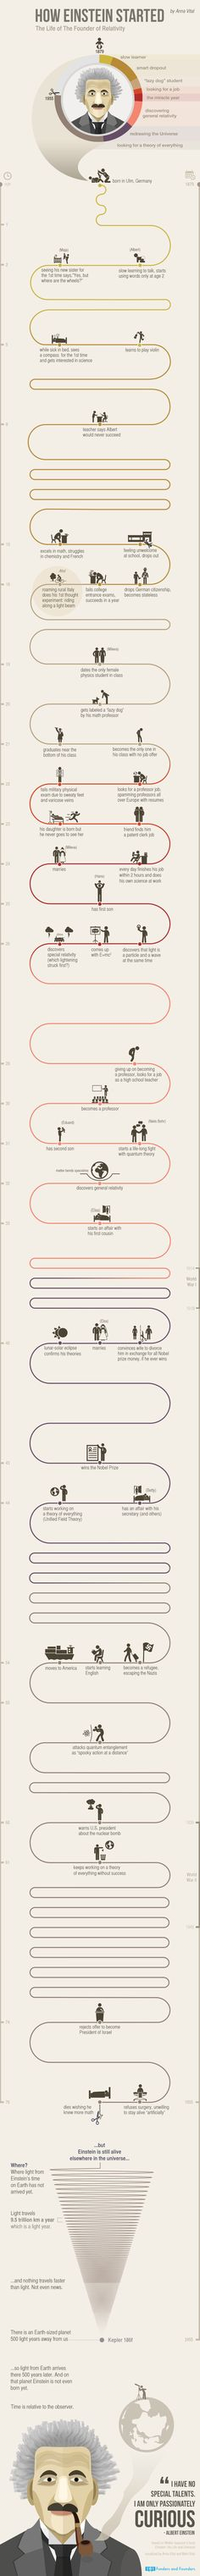 An Infographic To Show You The Legendary Life Of Einstein